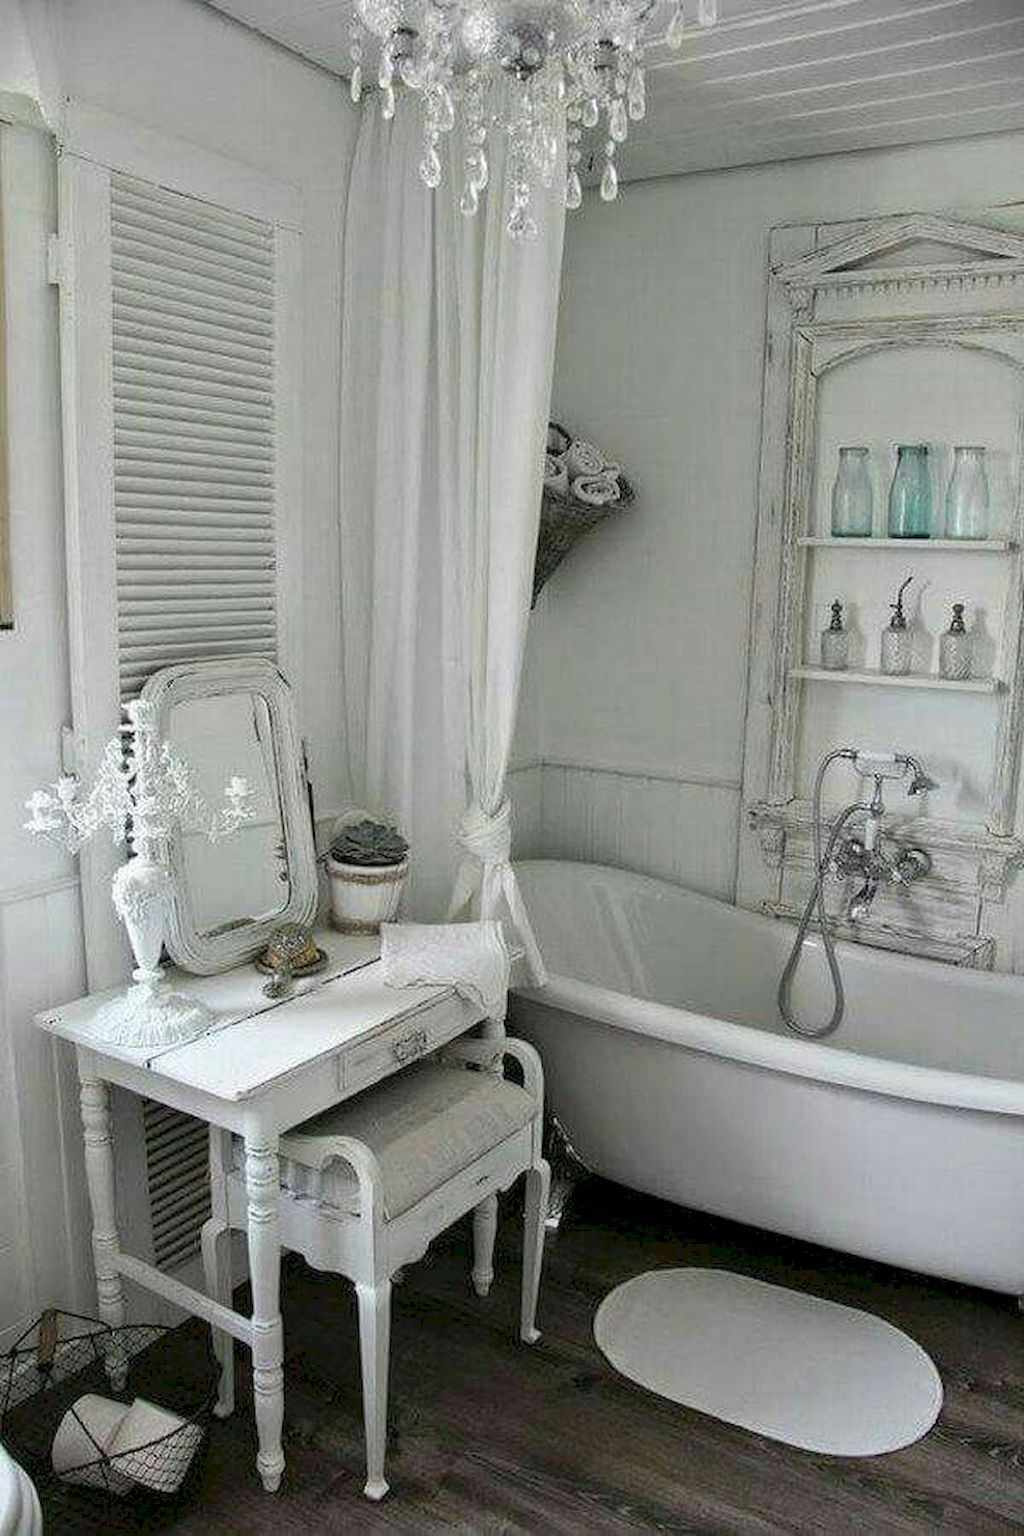 Window well decoration ideas  cool  adorable shabby chic bathroom decor ideas livinking